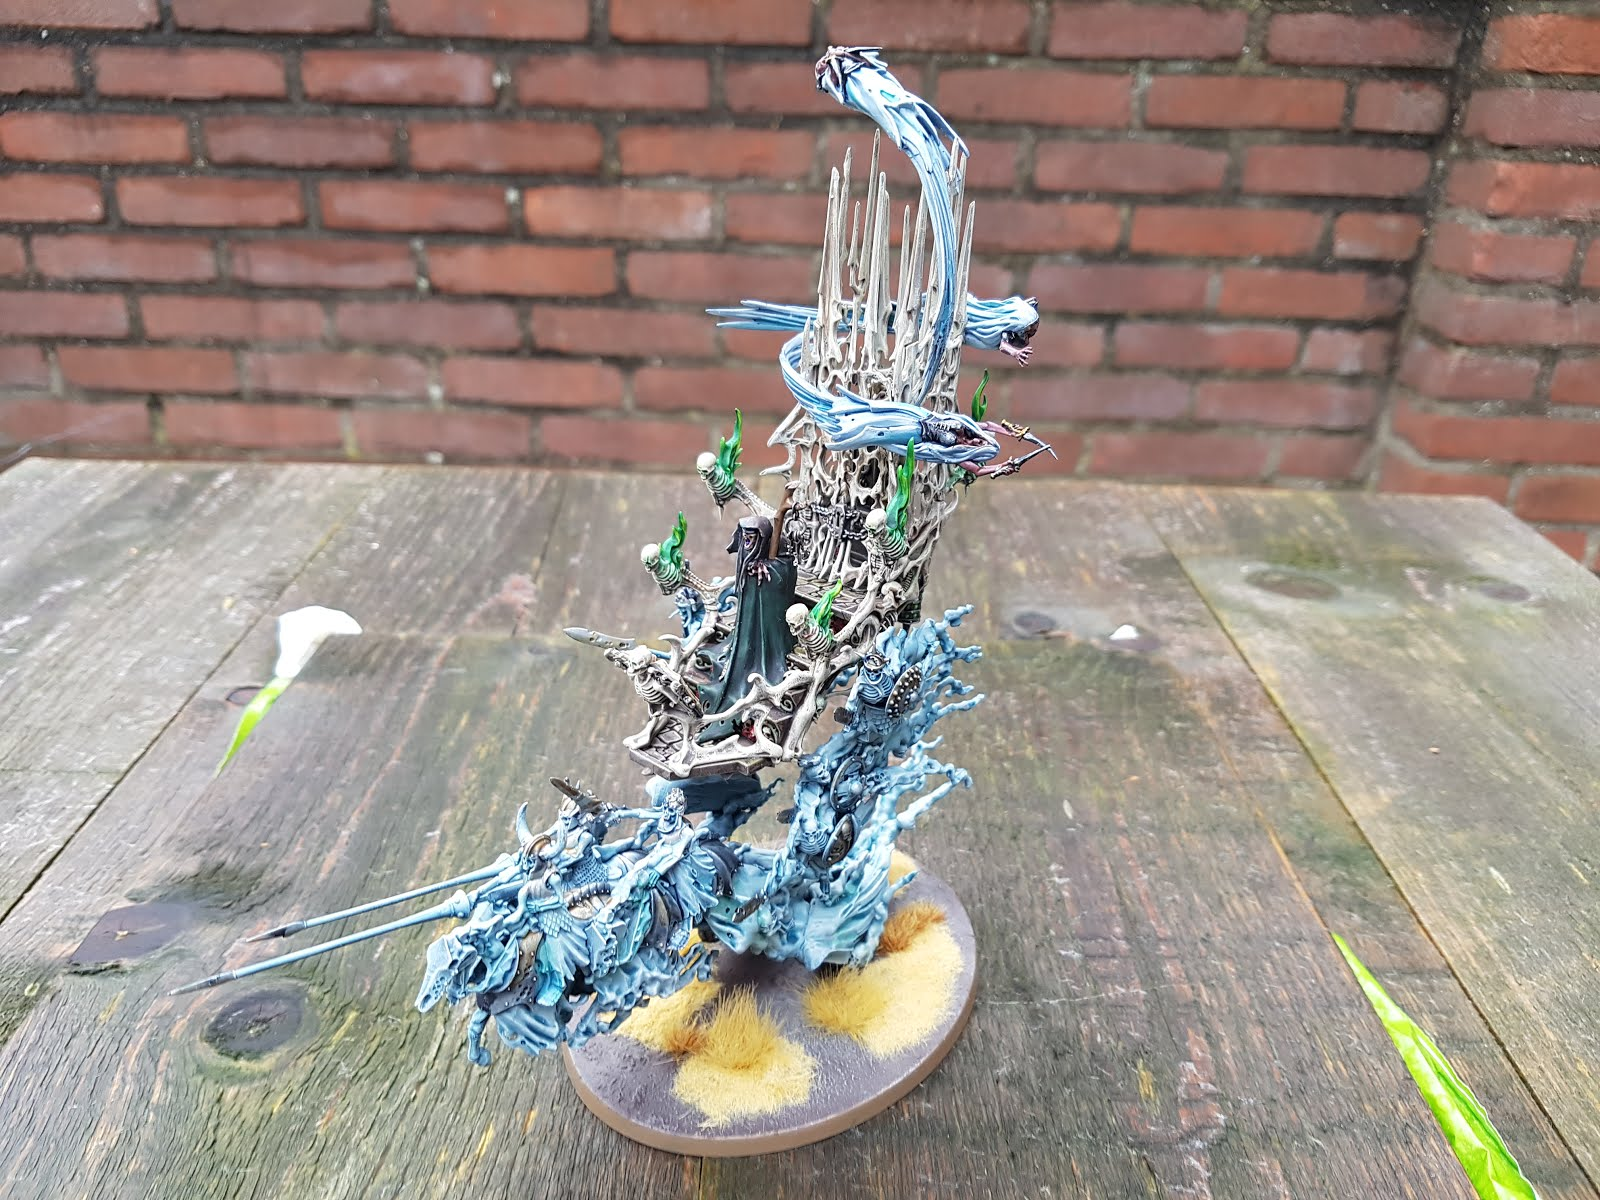 Another wargaming blog: A Mortis Engine manifests just in time for